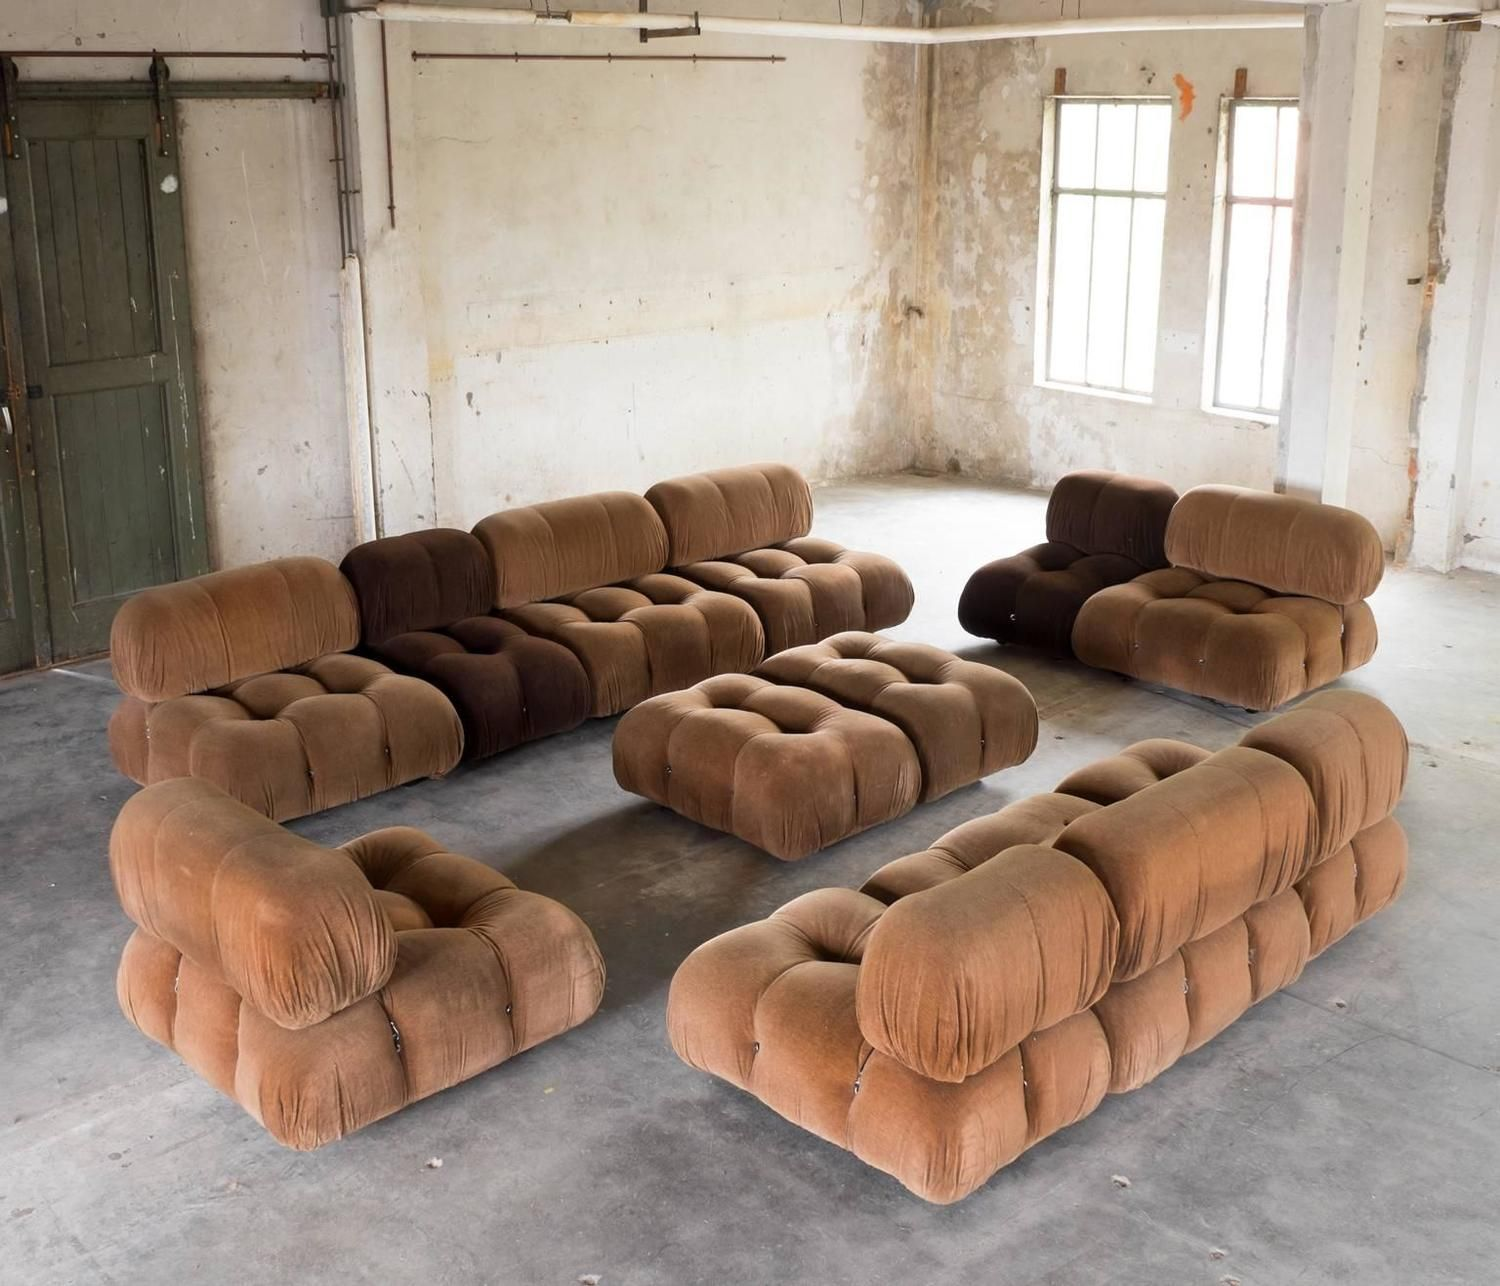 Camaleonda Modular Sofa By Mario Bellini For C B Italia 1970s